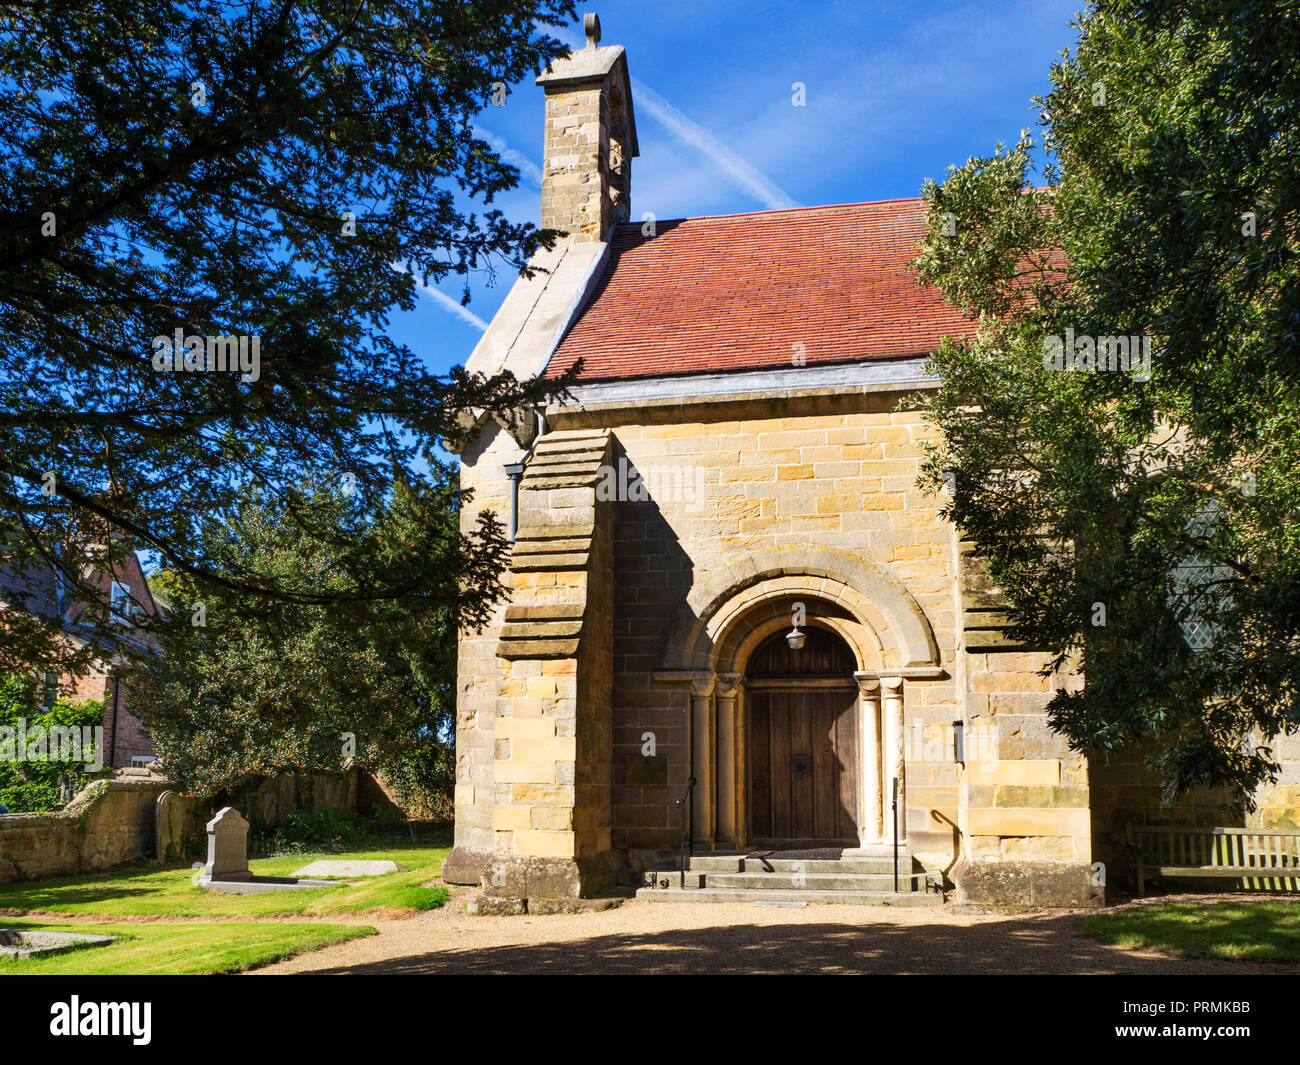 St Marys Churches Conservation Trust Church at Roecliffe near Boroughbridge North Yorkshire England - Stock Image